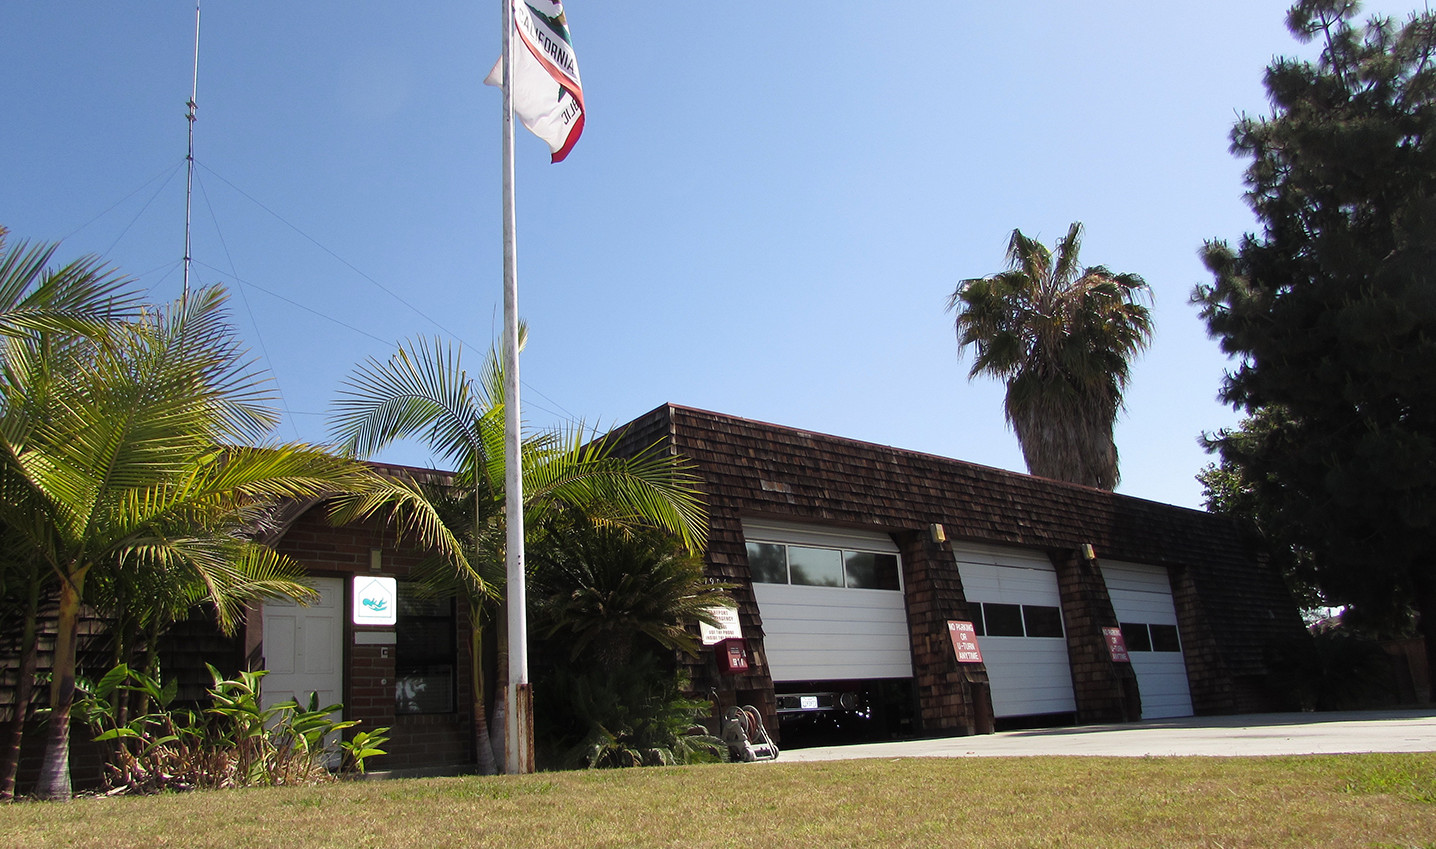 Fire Station Number 2, next to the Omni La Costa Resort and Spa, is long overdue for renovations. On Tuesday, the City Council voted to spend about $342,000 to update the station. Photo by Ellen Wright